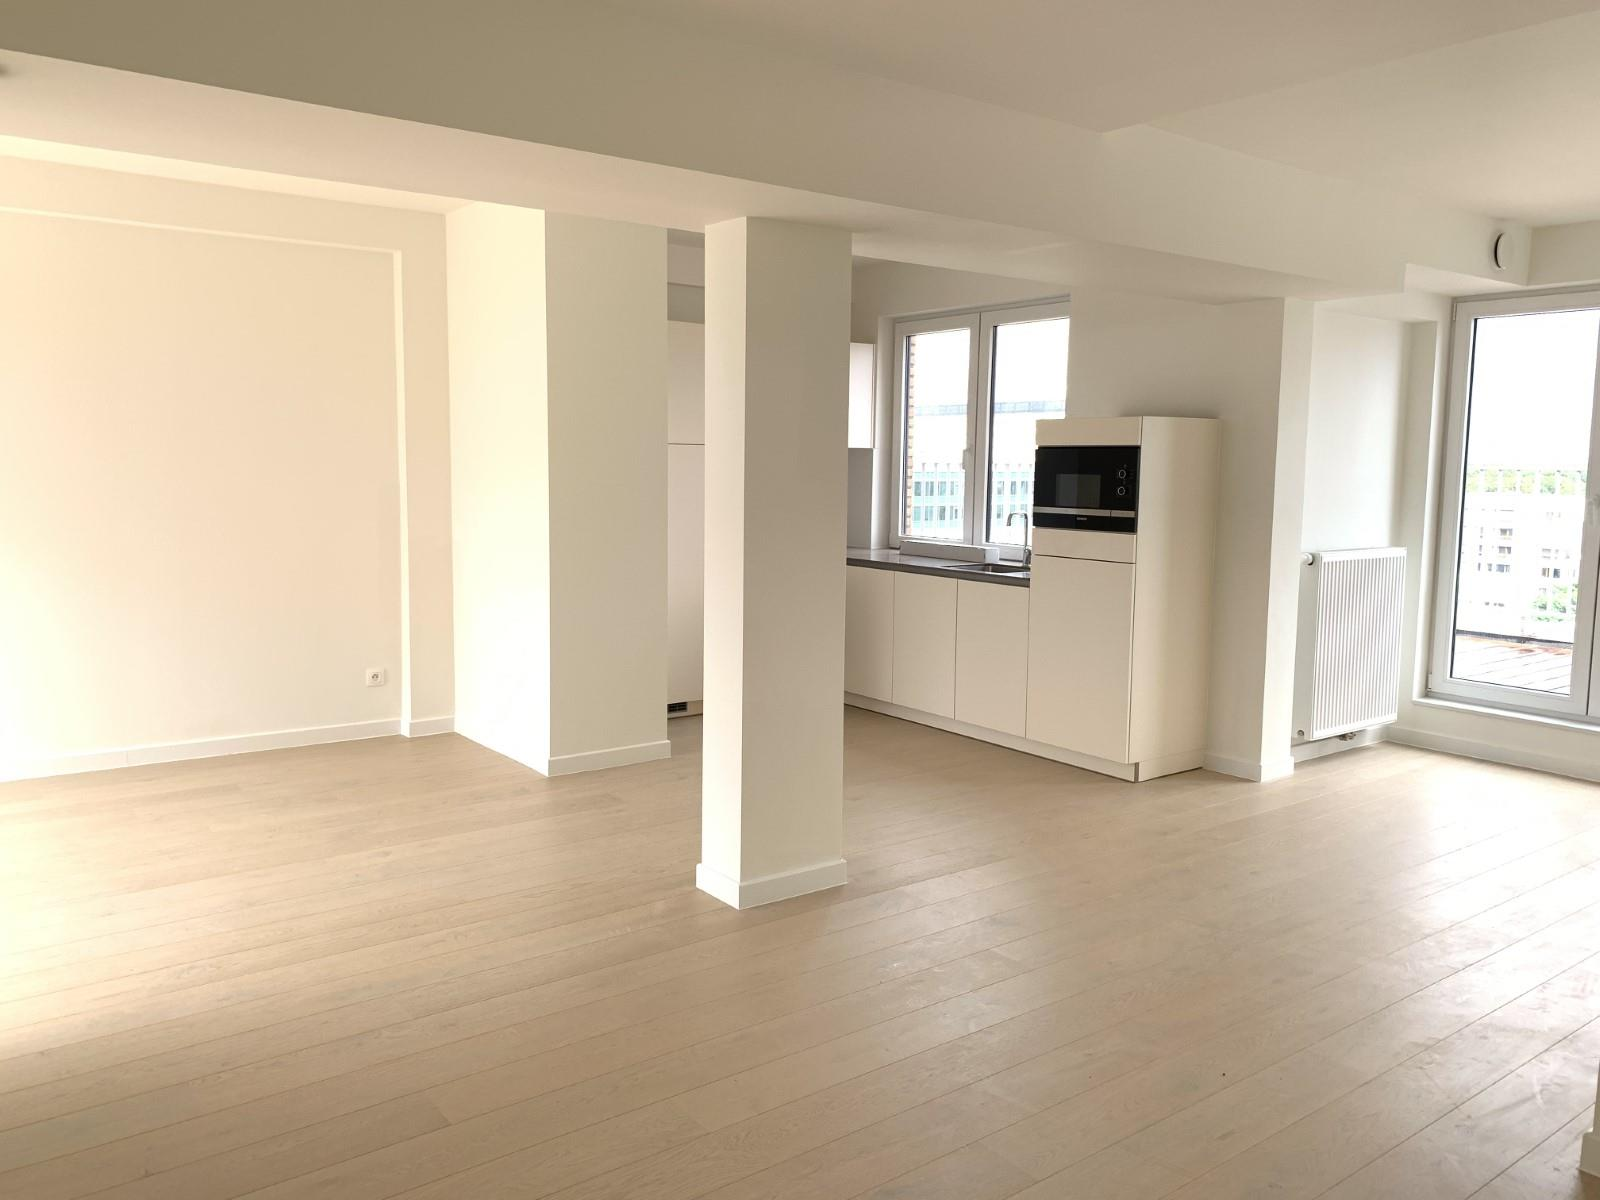 Appartement exceptionnel - Schaerbeek - #3875201-20